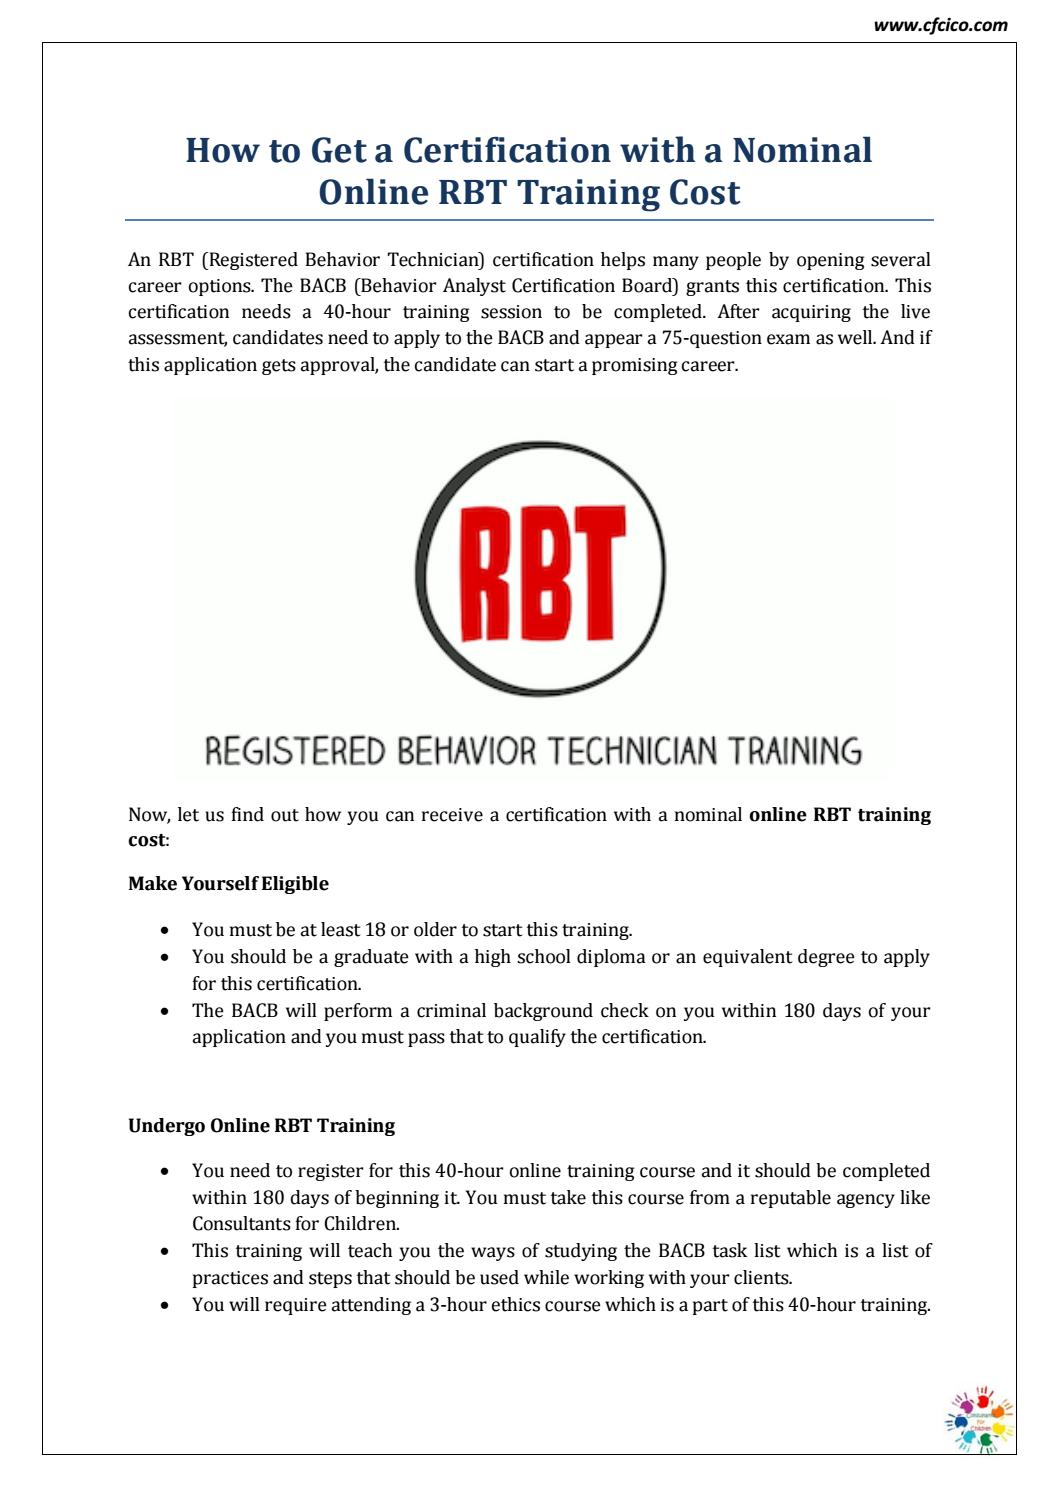 Online Rbt Training Cost Cfcico By Cfcico Issuu